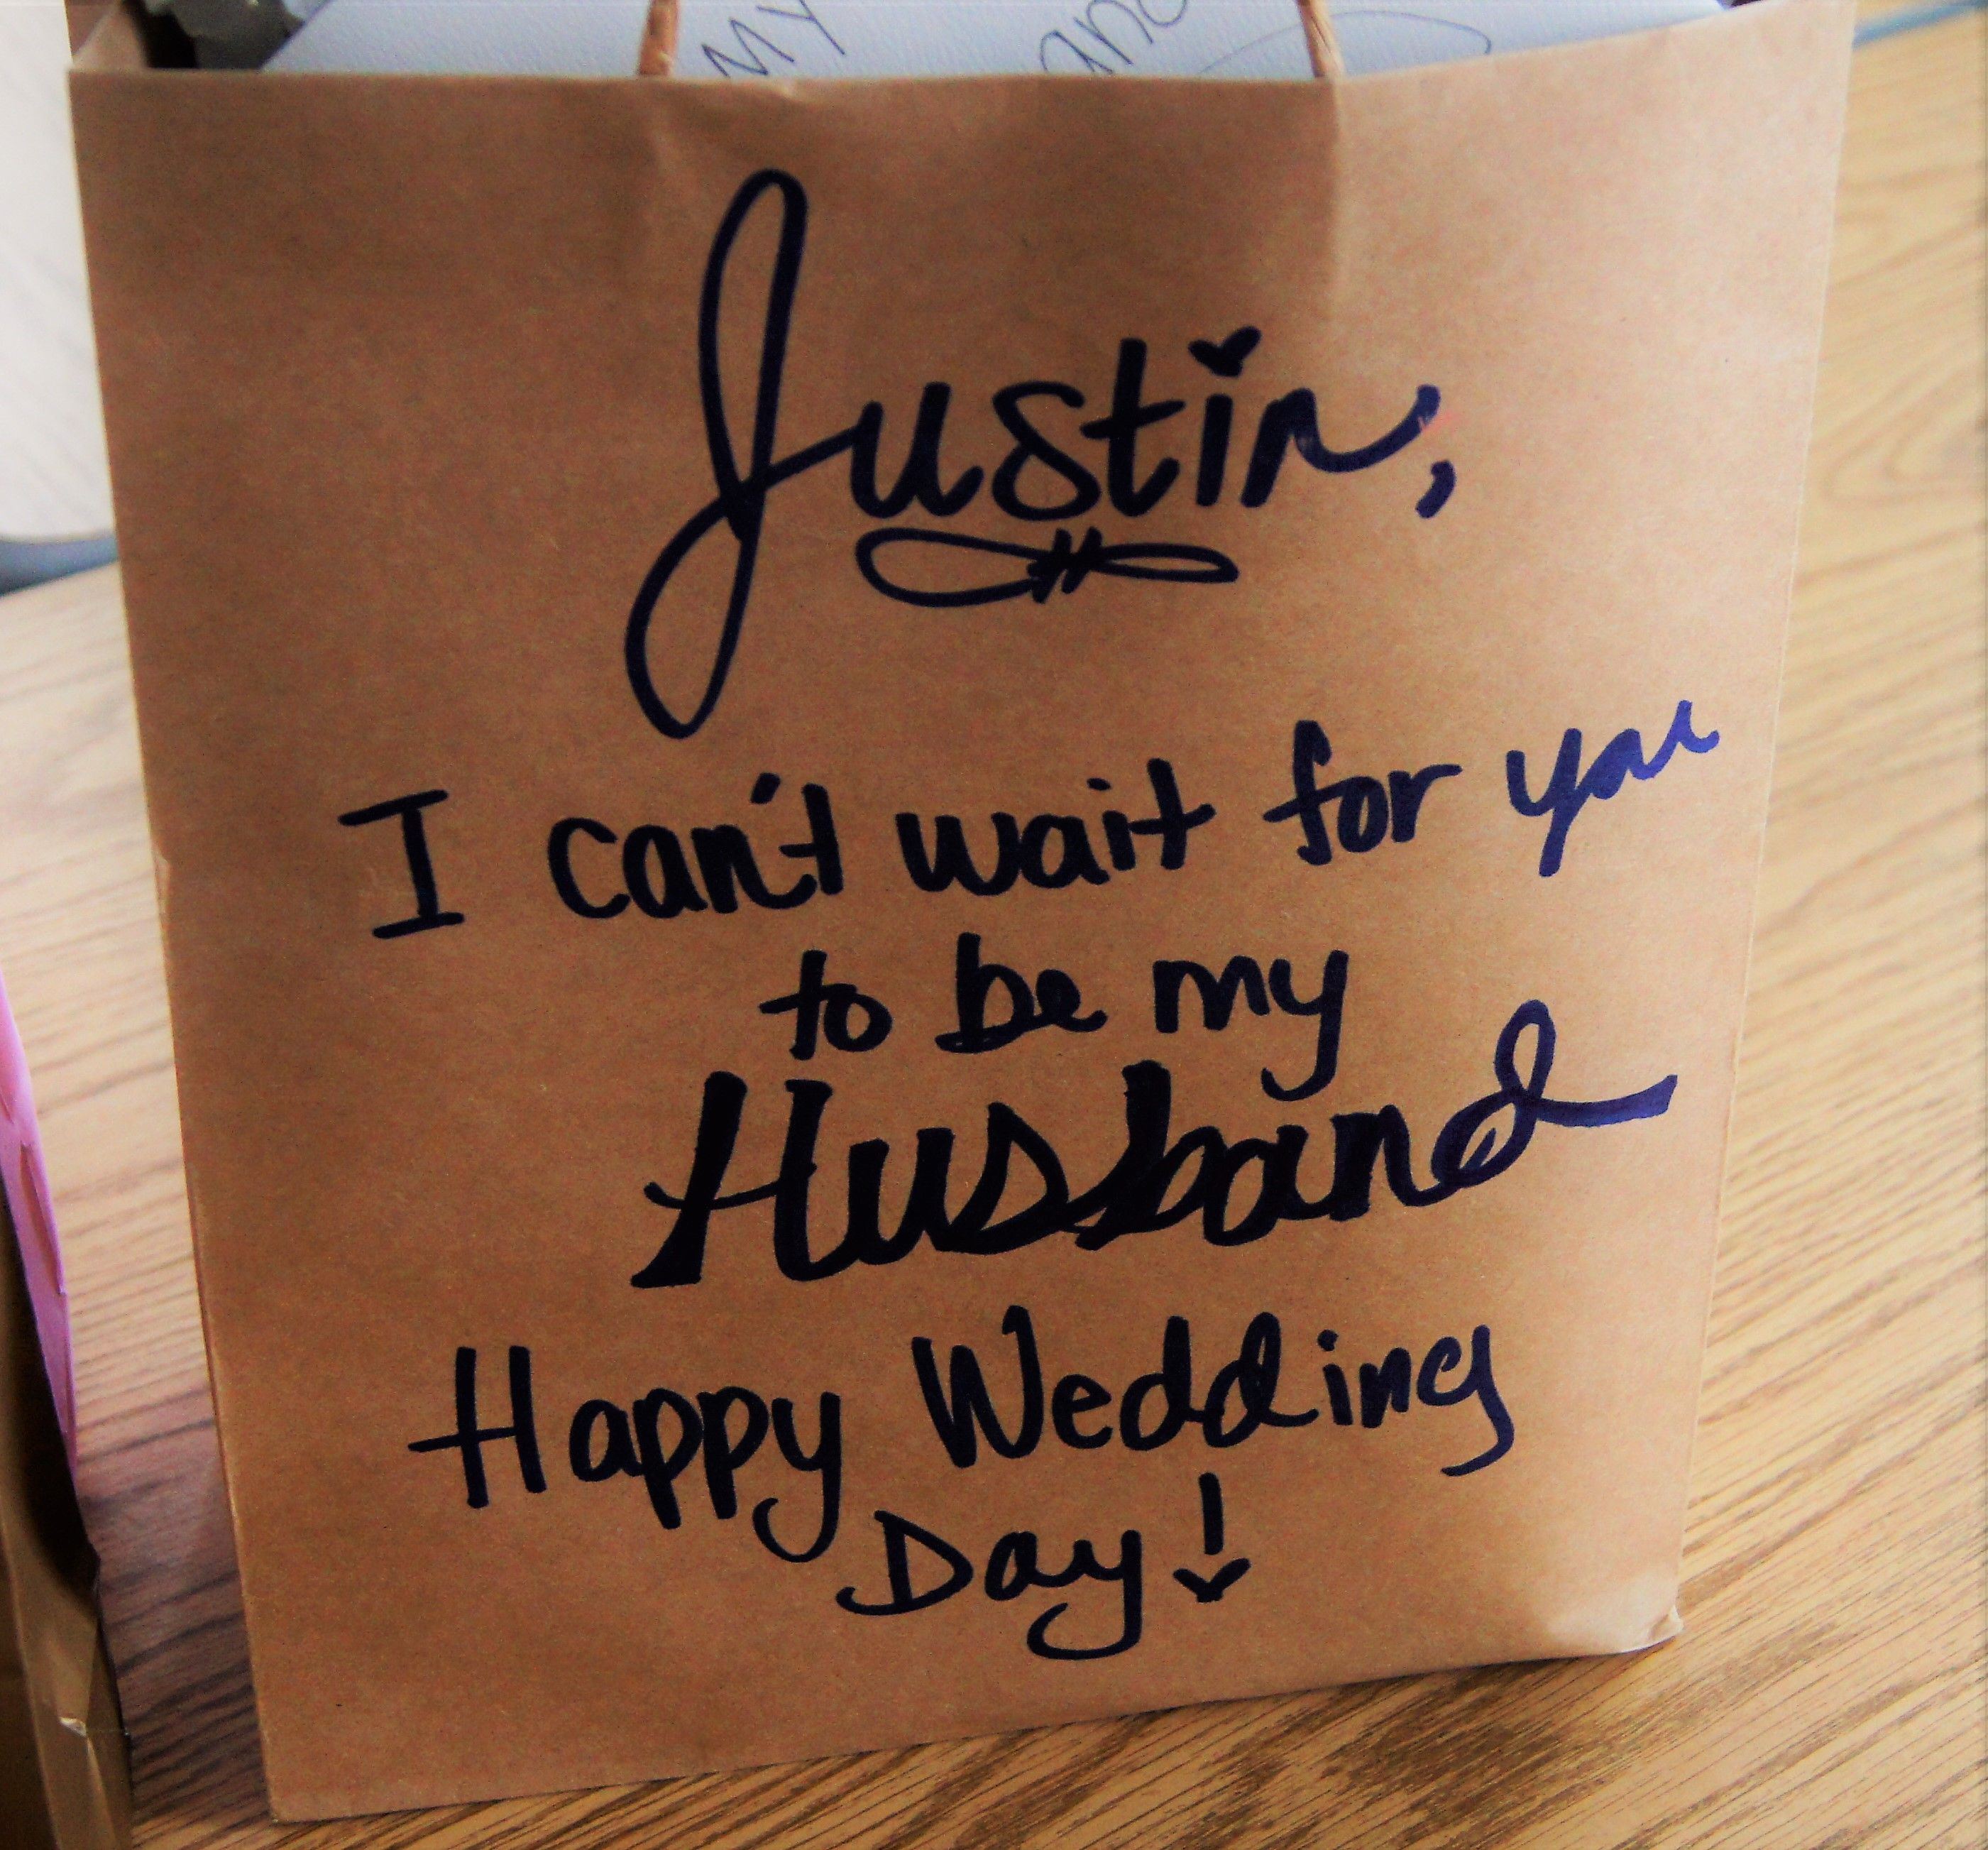 Imagine making a special gift for you husband your wedding